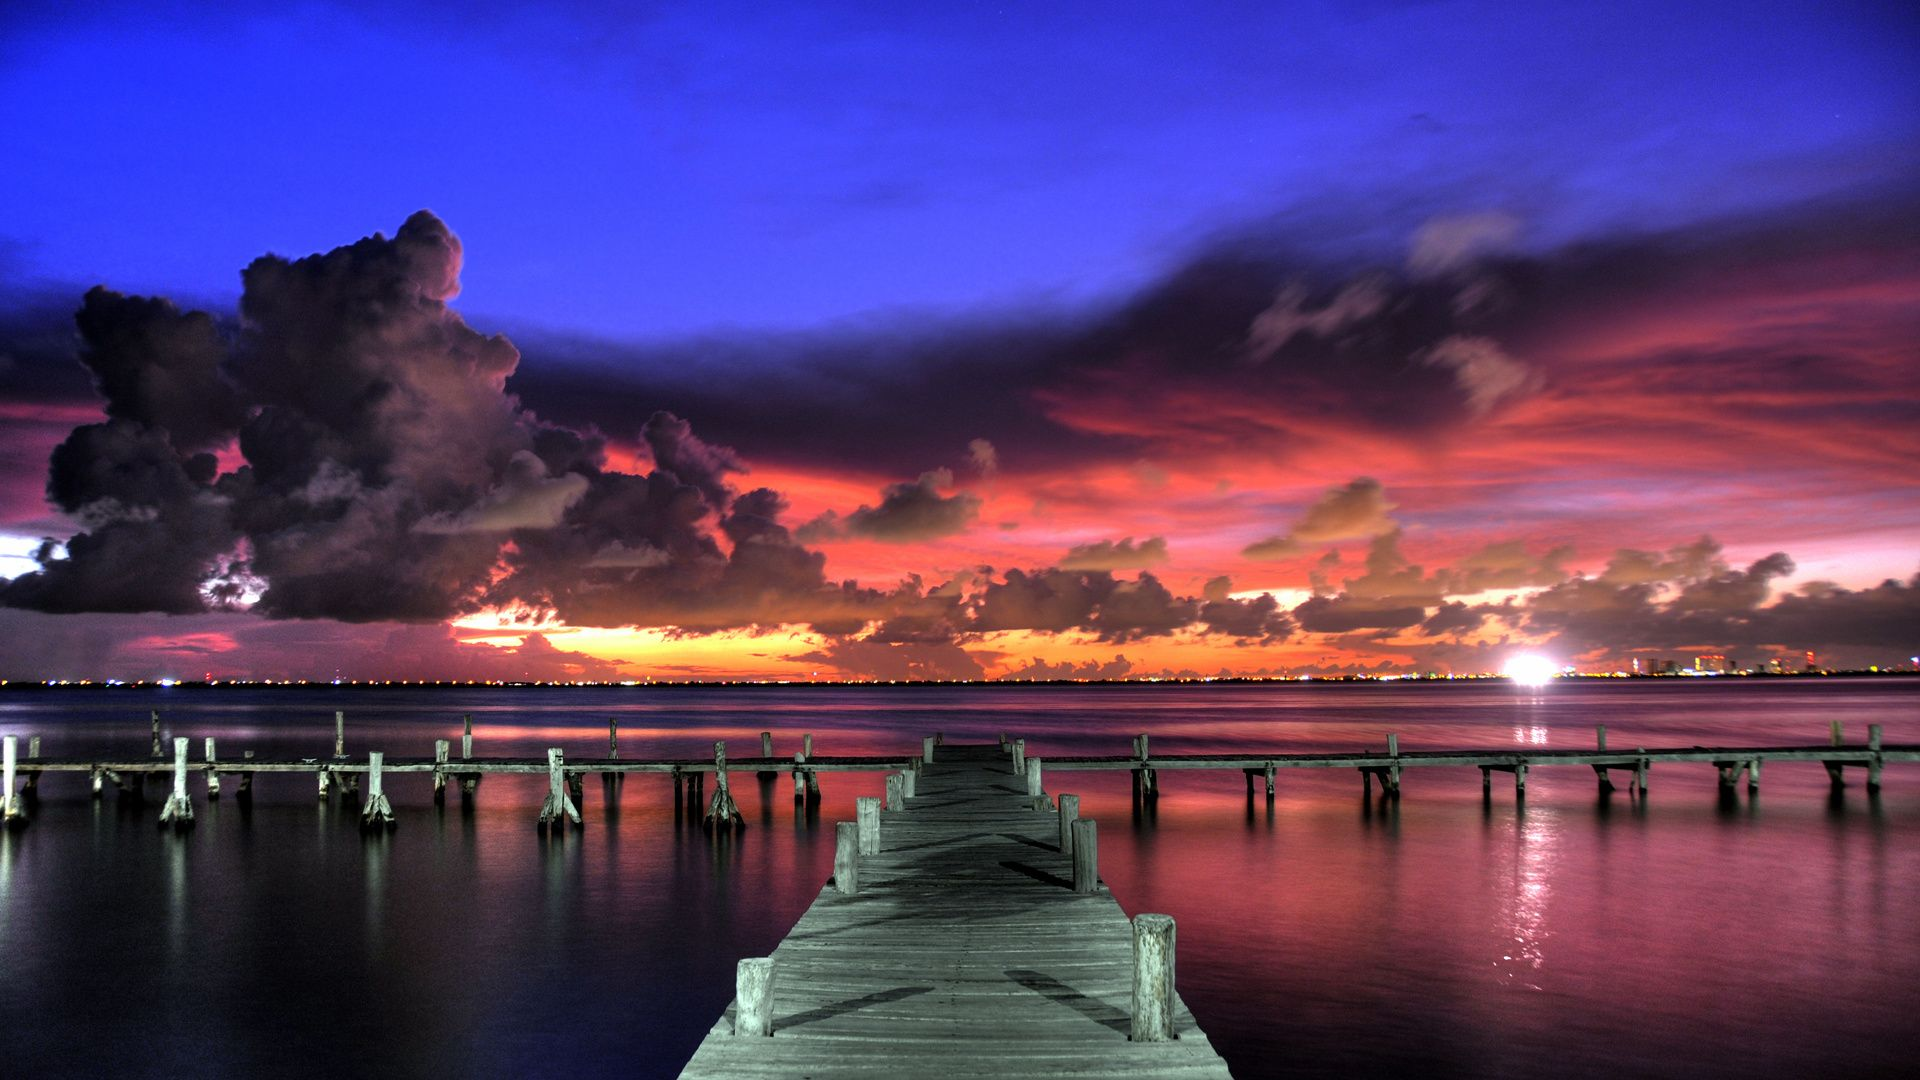 Horizontal background picture hd